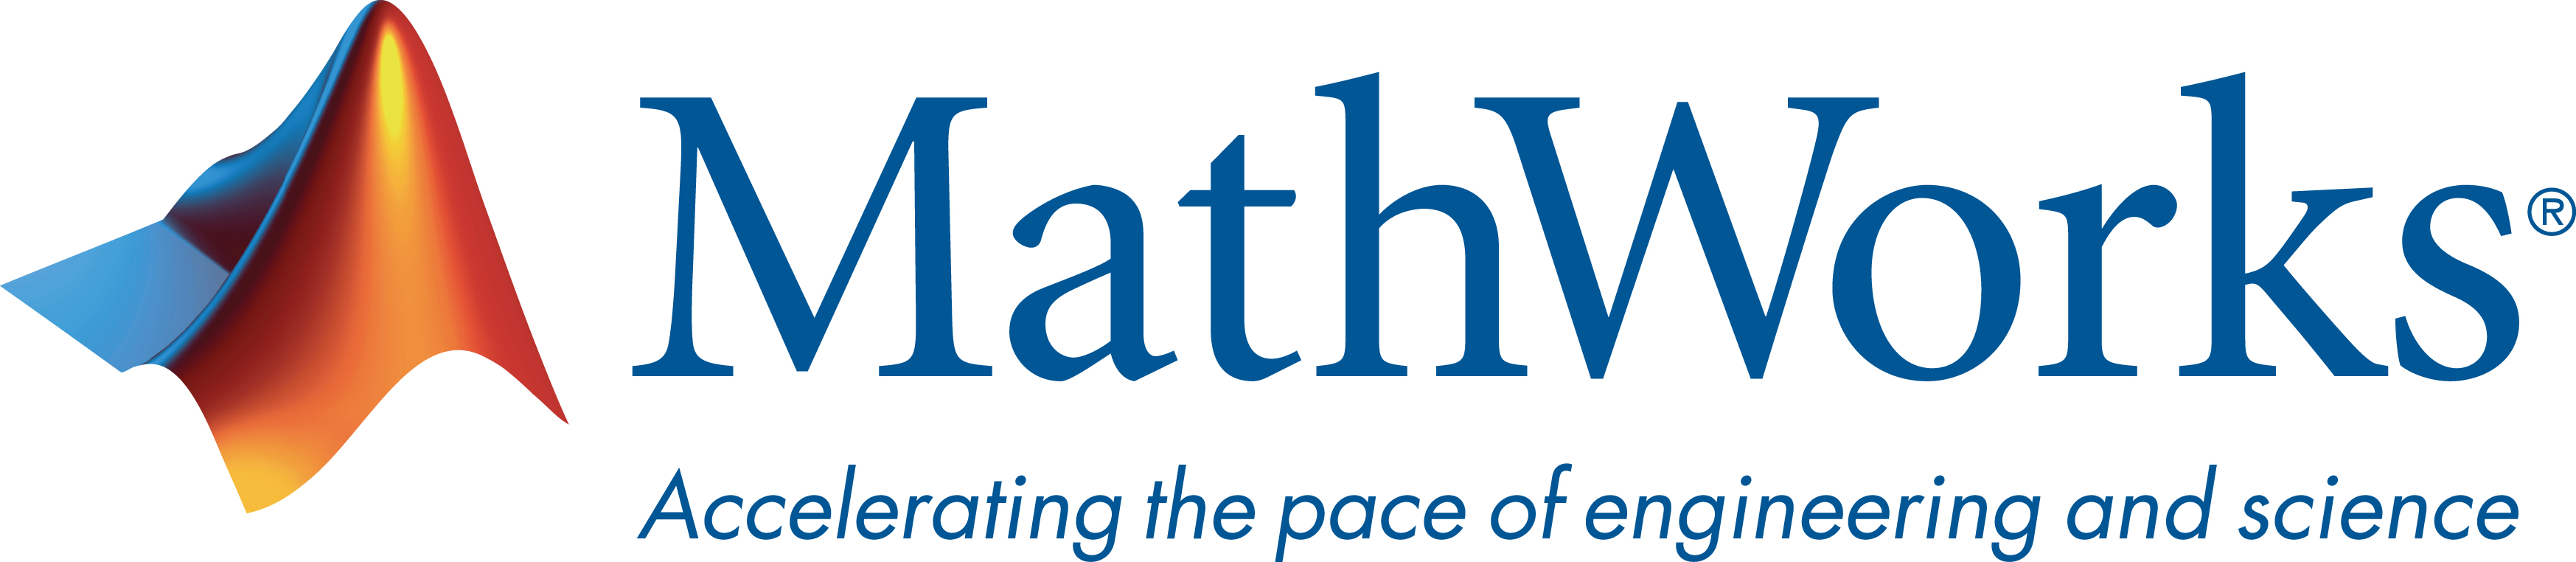 math works Mathworks is the leading developer of mathematical computing software  engineers and scientists worldwide rely on its products to accelerate the pace of  disc.